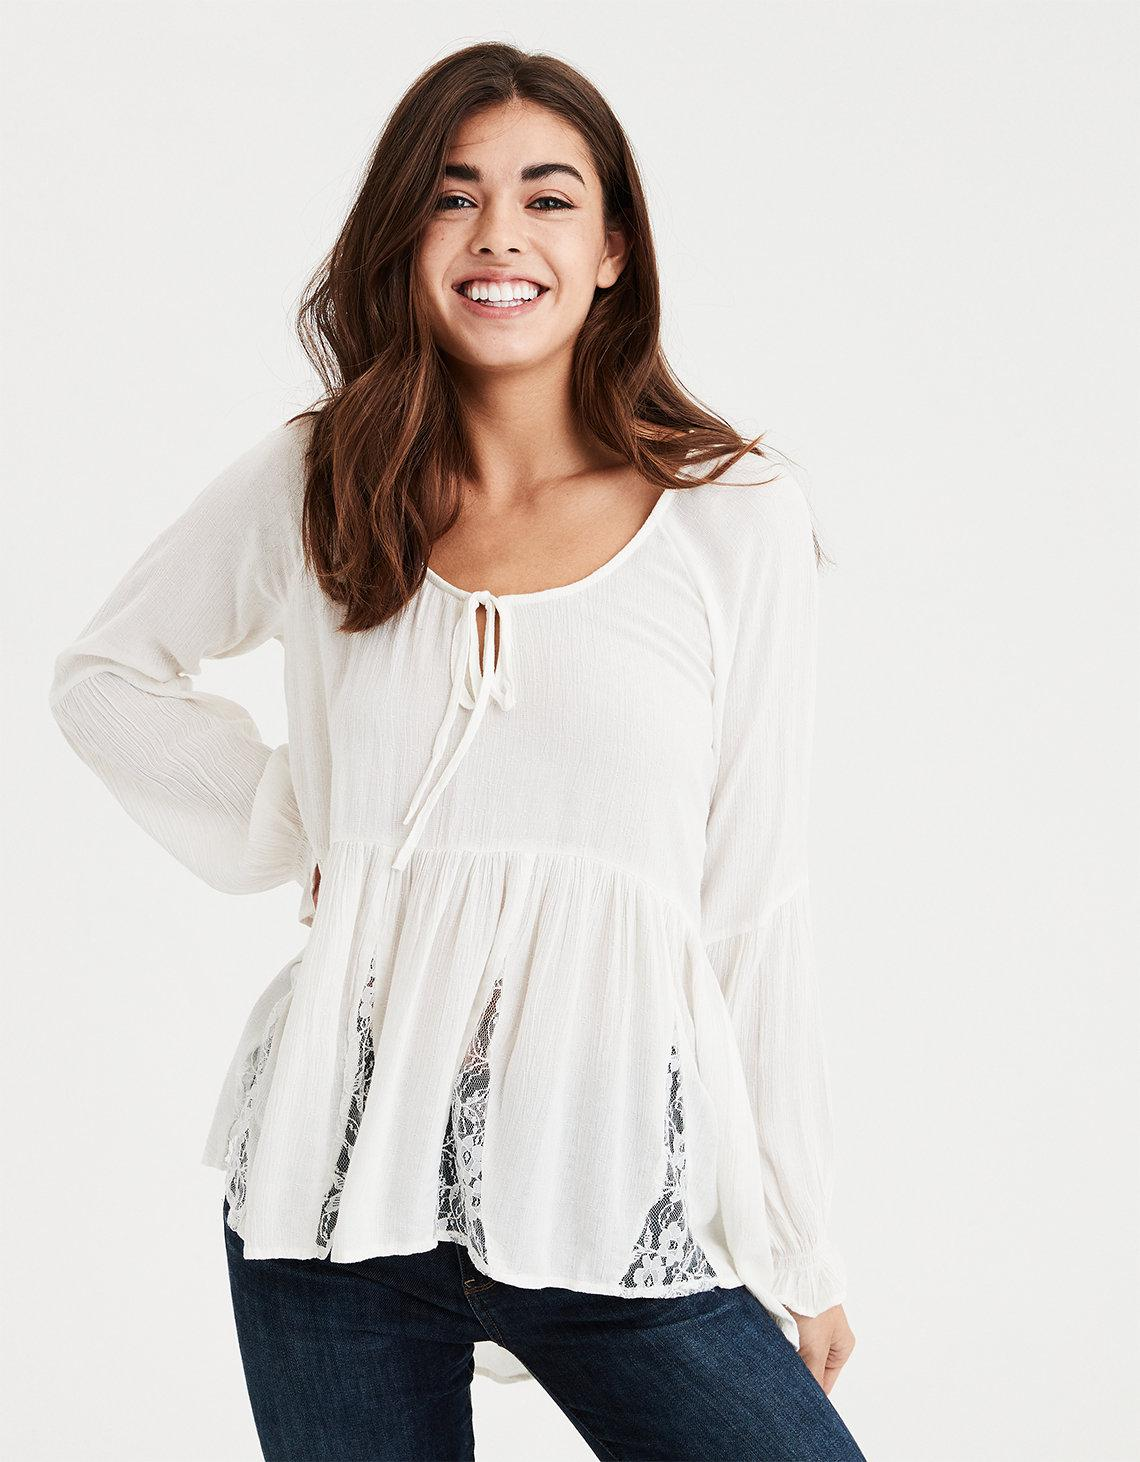 459c802df5628 Lyst - American Eagle Ae Lace Inset Long Sleeve Top in White